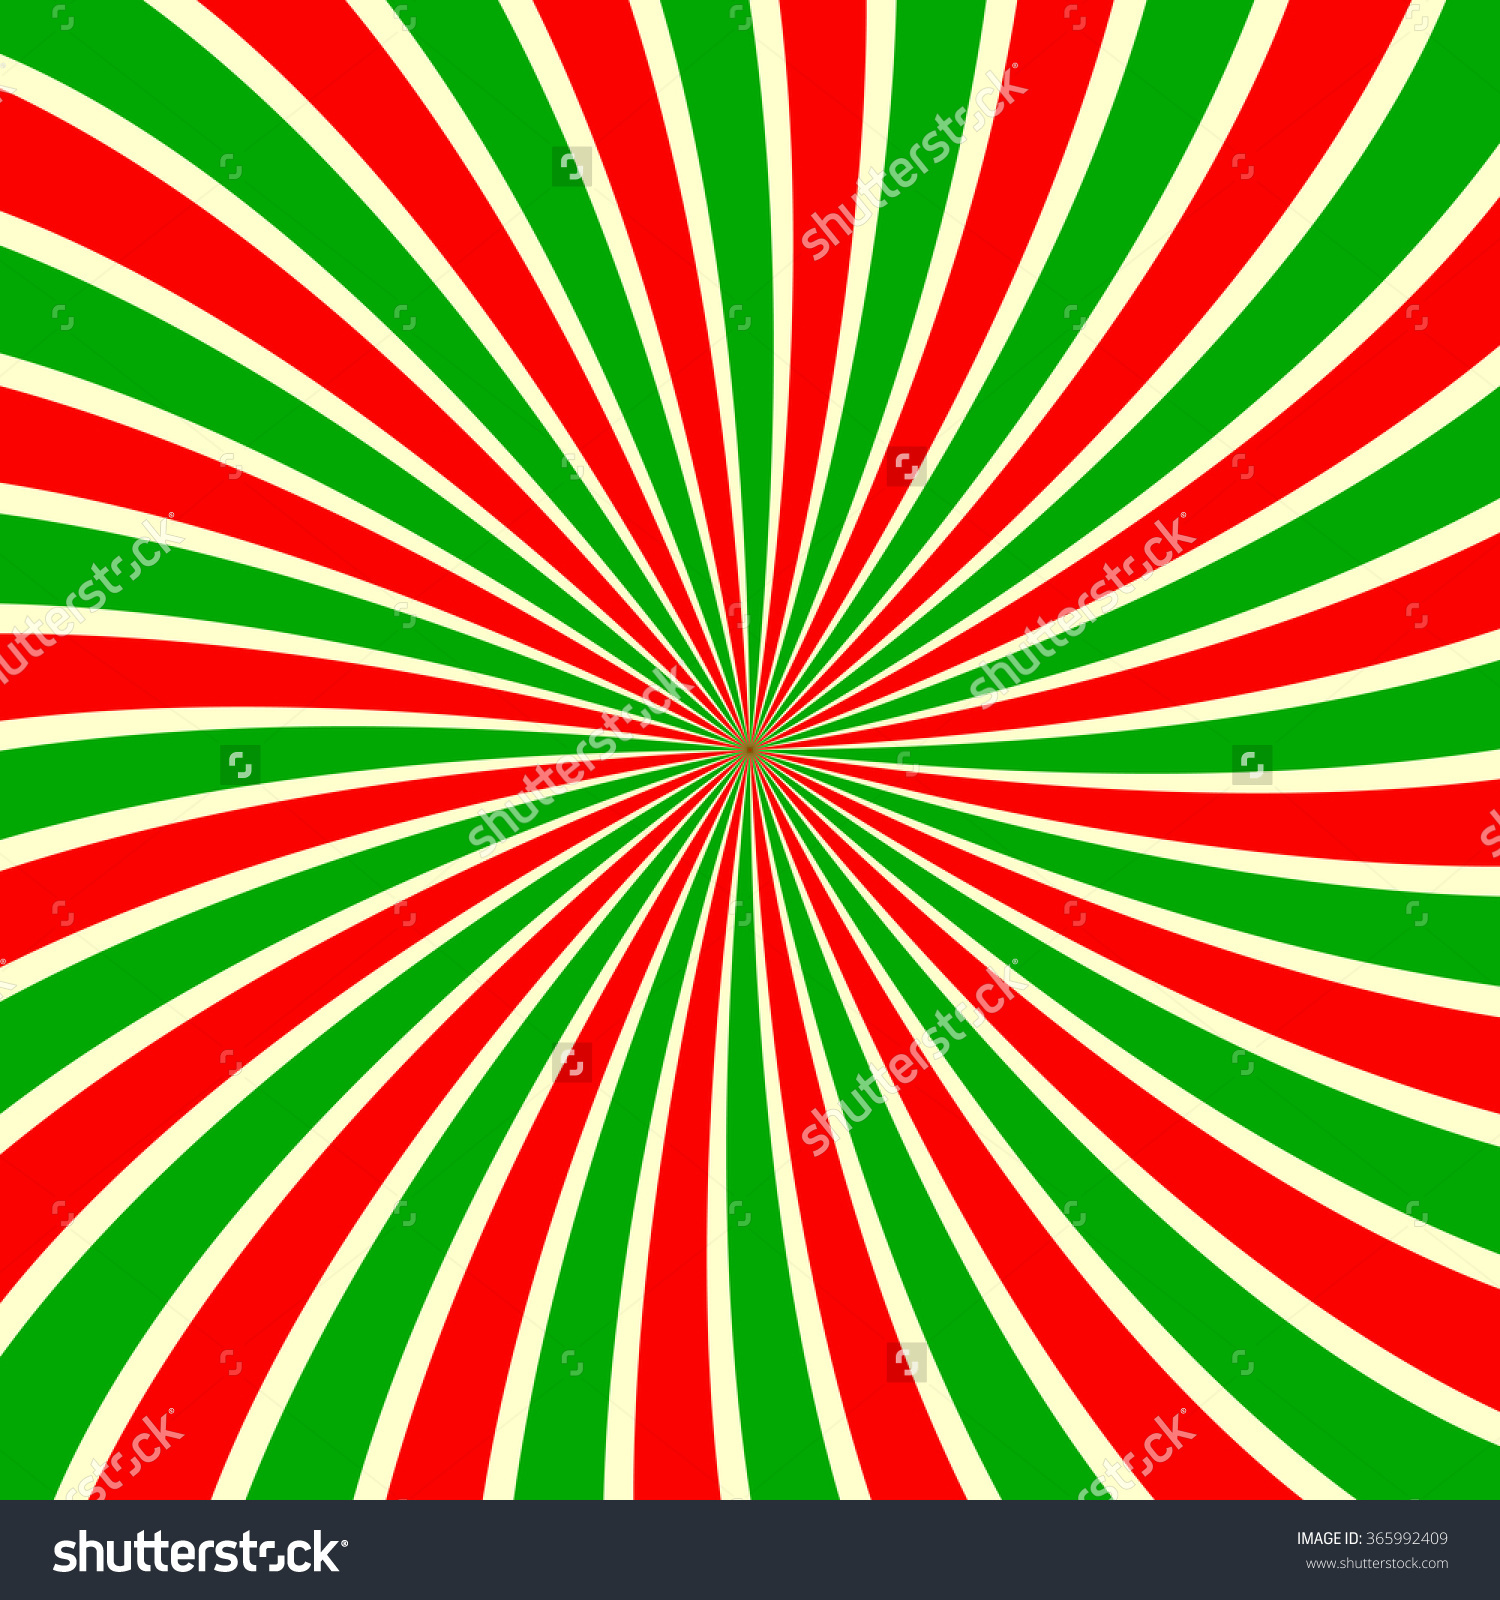 Red And Green Wallpaper